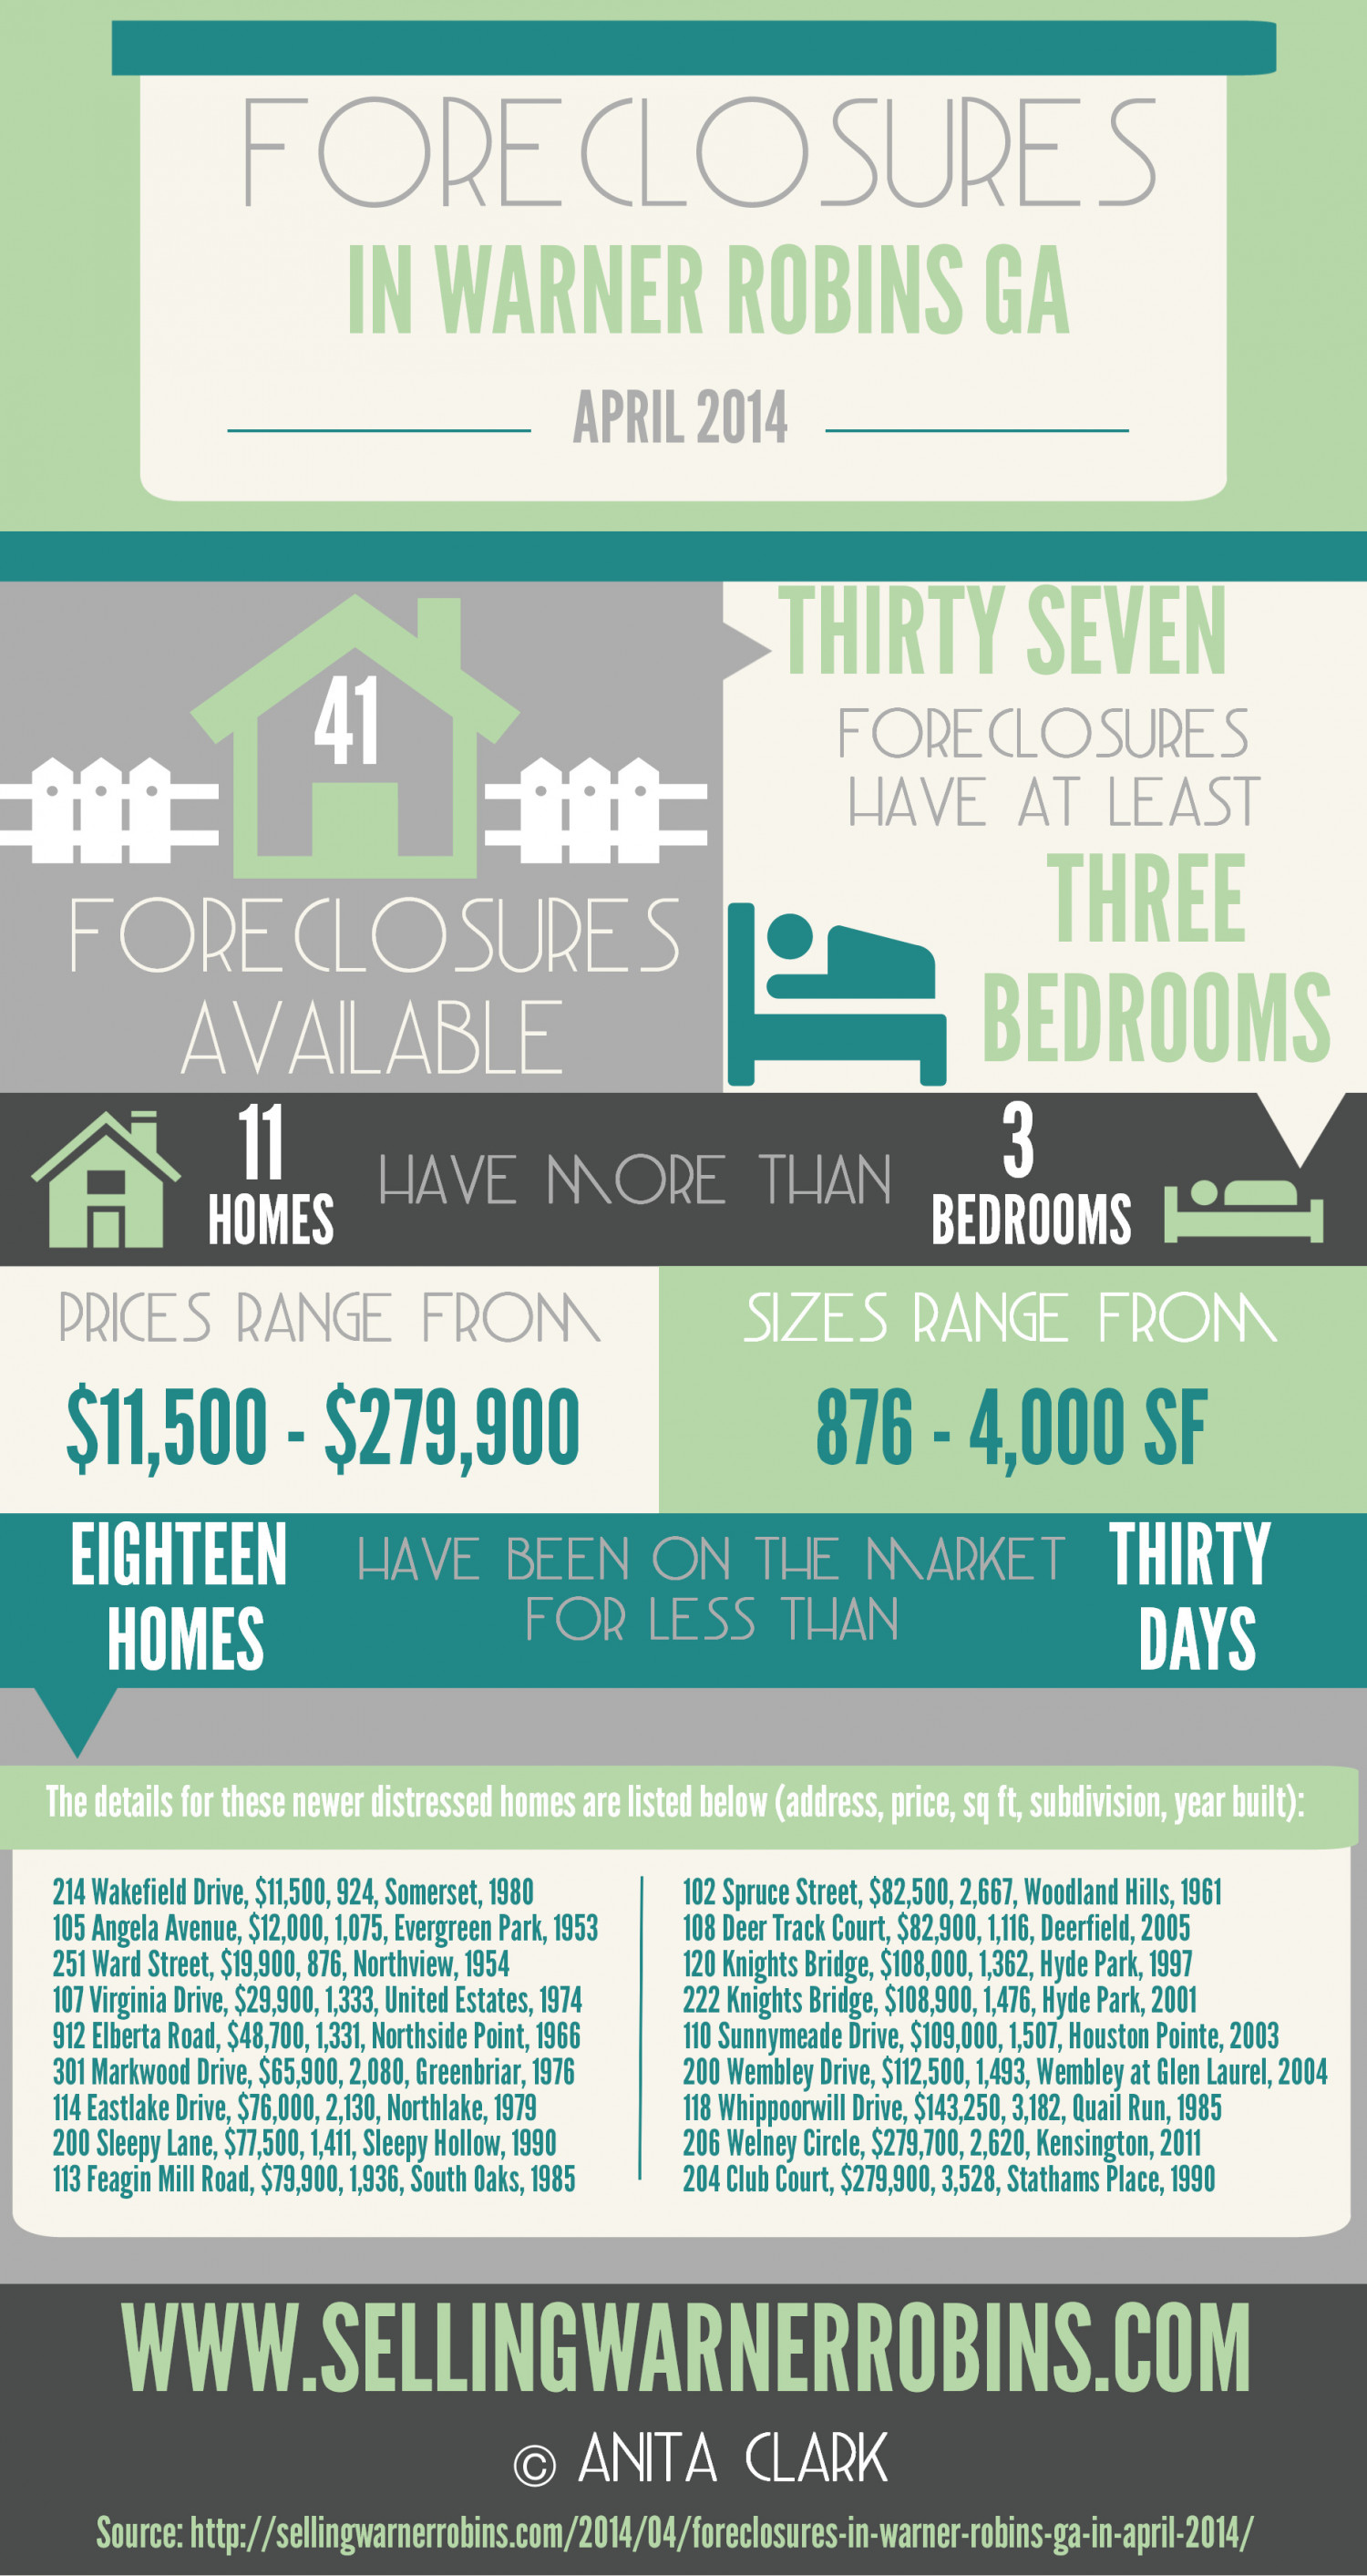 Foreclosures in Warner Robins GA for April 2014 Infographic